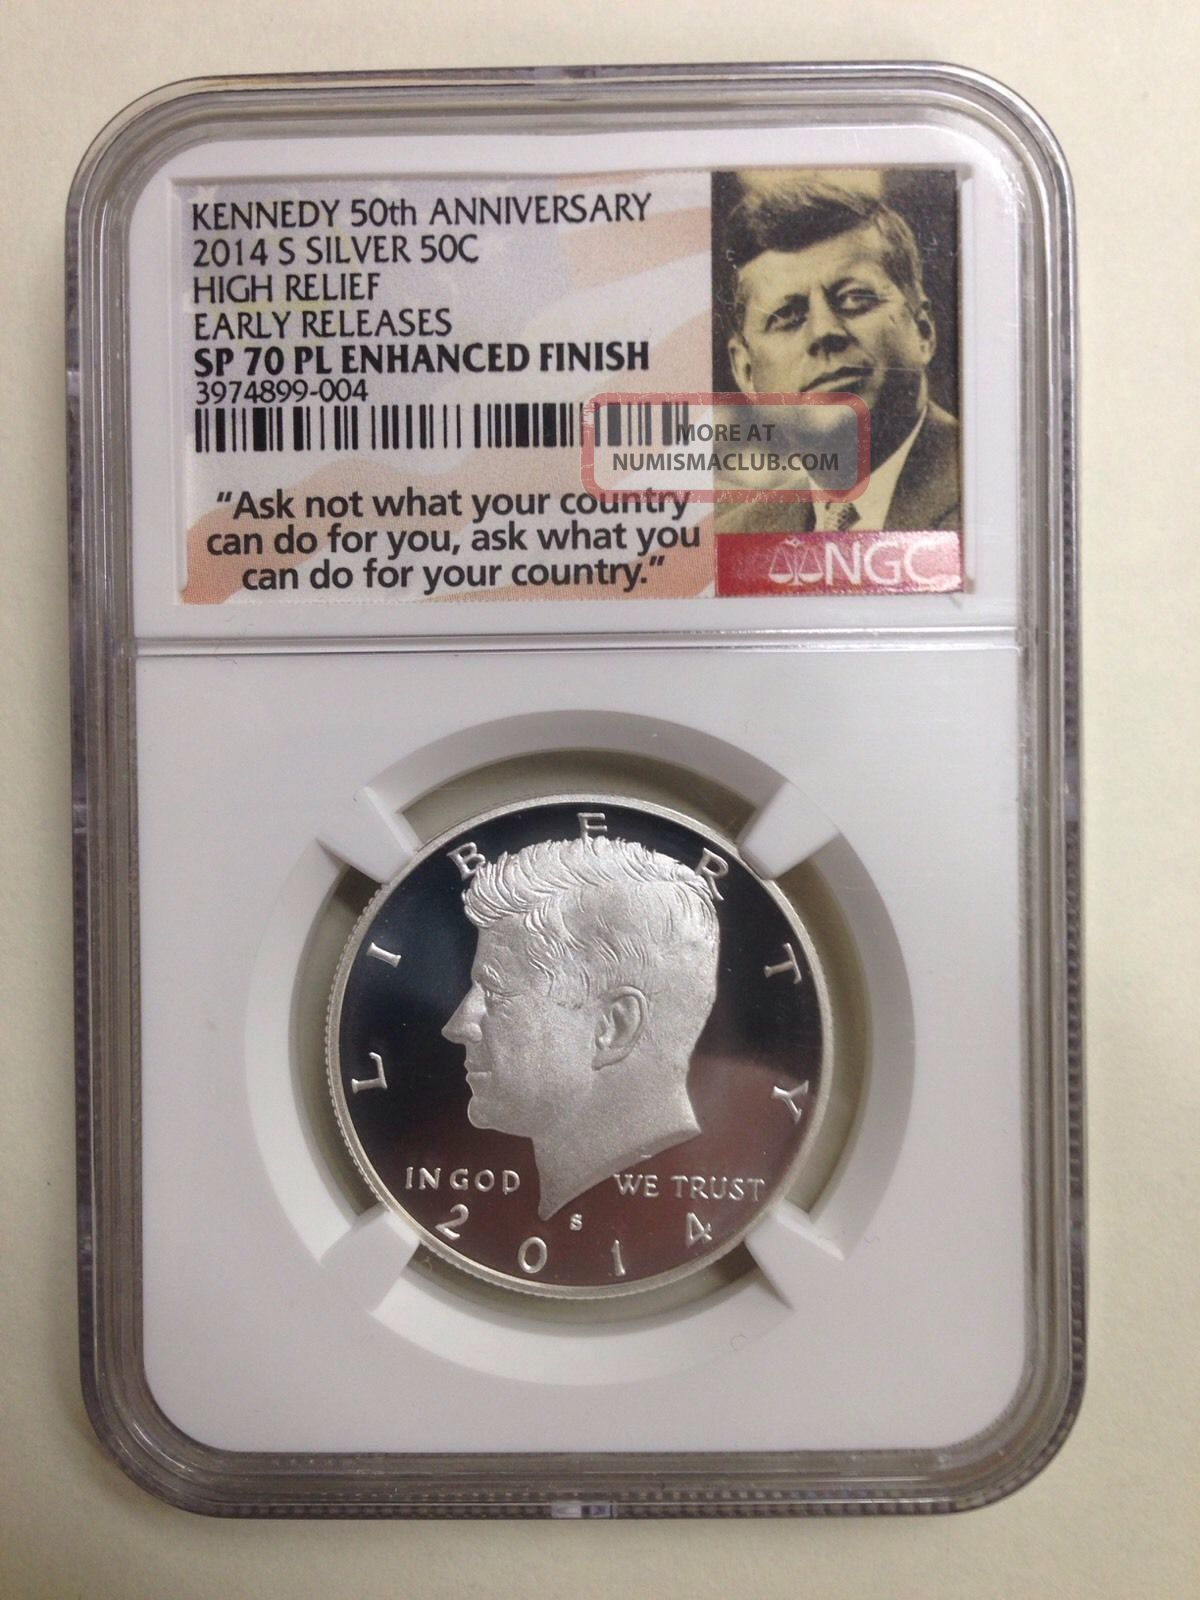 2014 - S 50c Ngc Sp70 Pl E.  R.  Enhanced State Bu Kennedy Silver Coin From 50th Silver photo